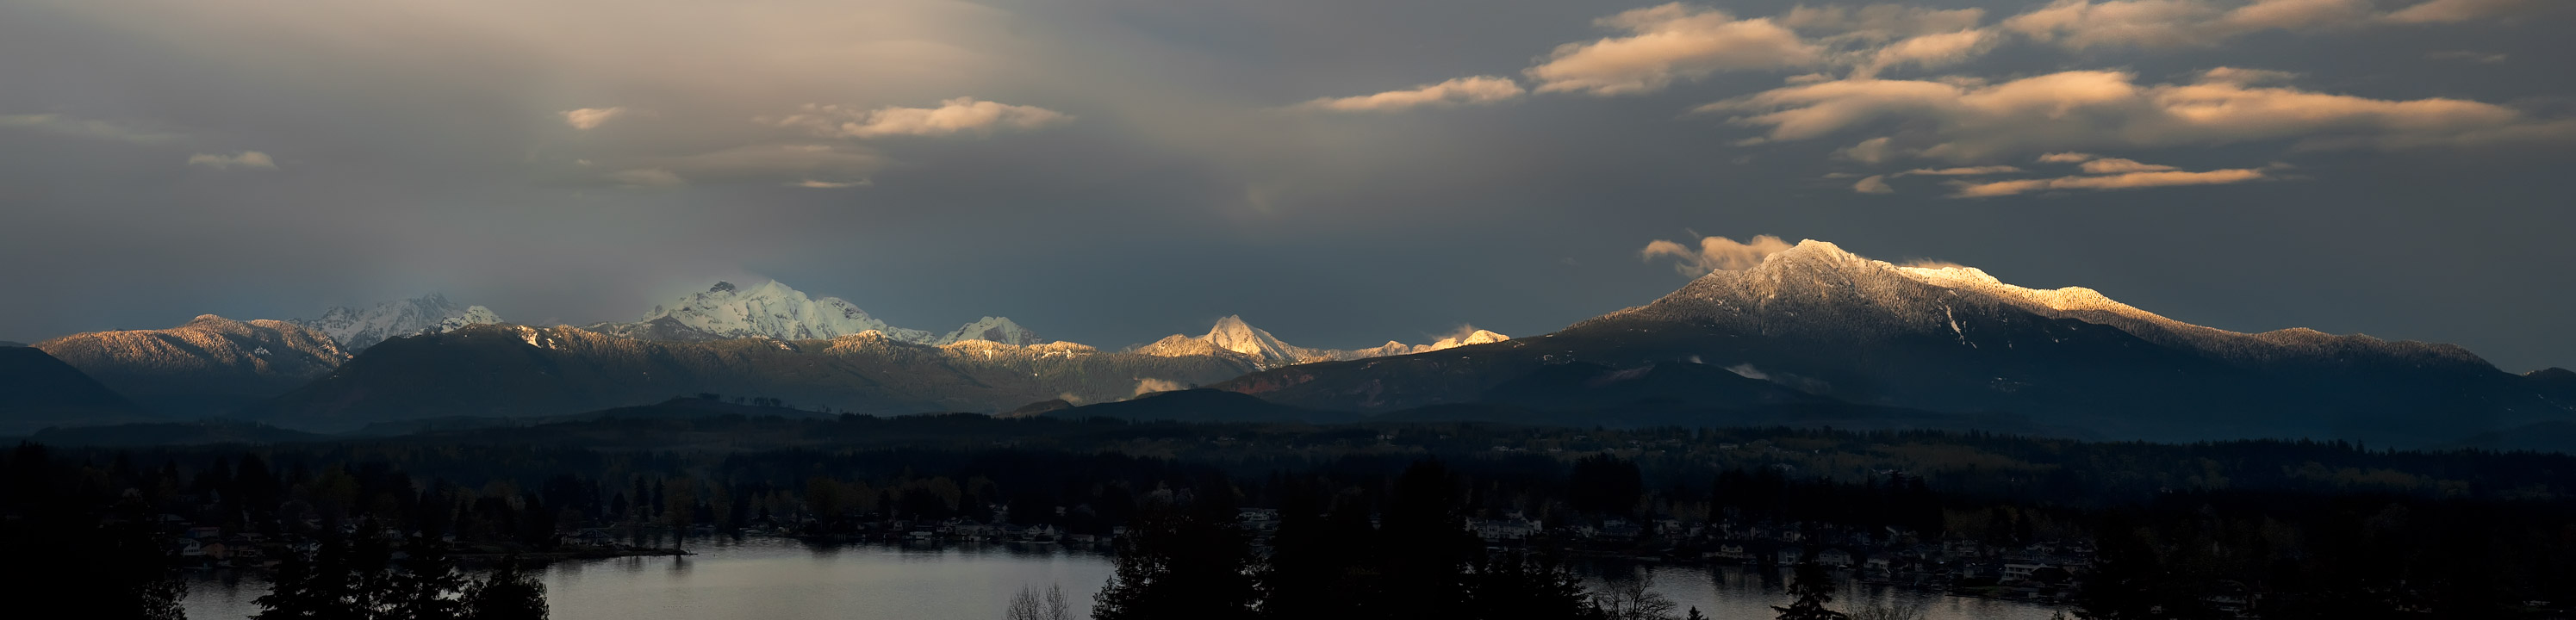 Eastern Windows : Lake Stevens, Mt. Pilchuck, and the Cascades